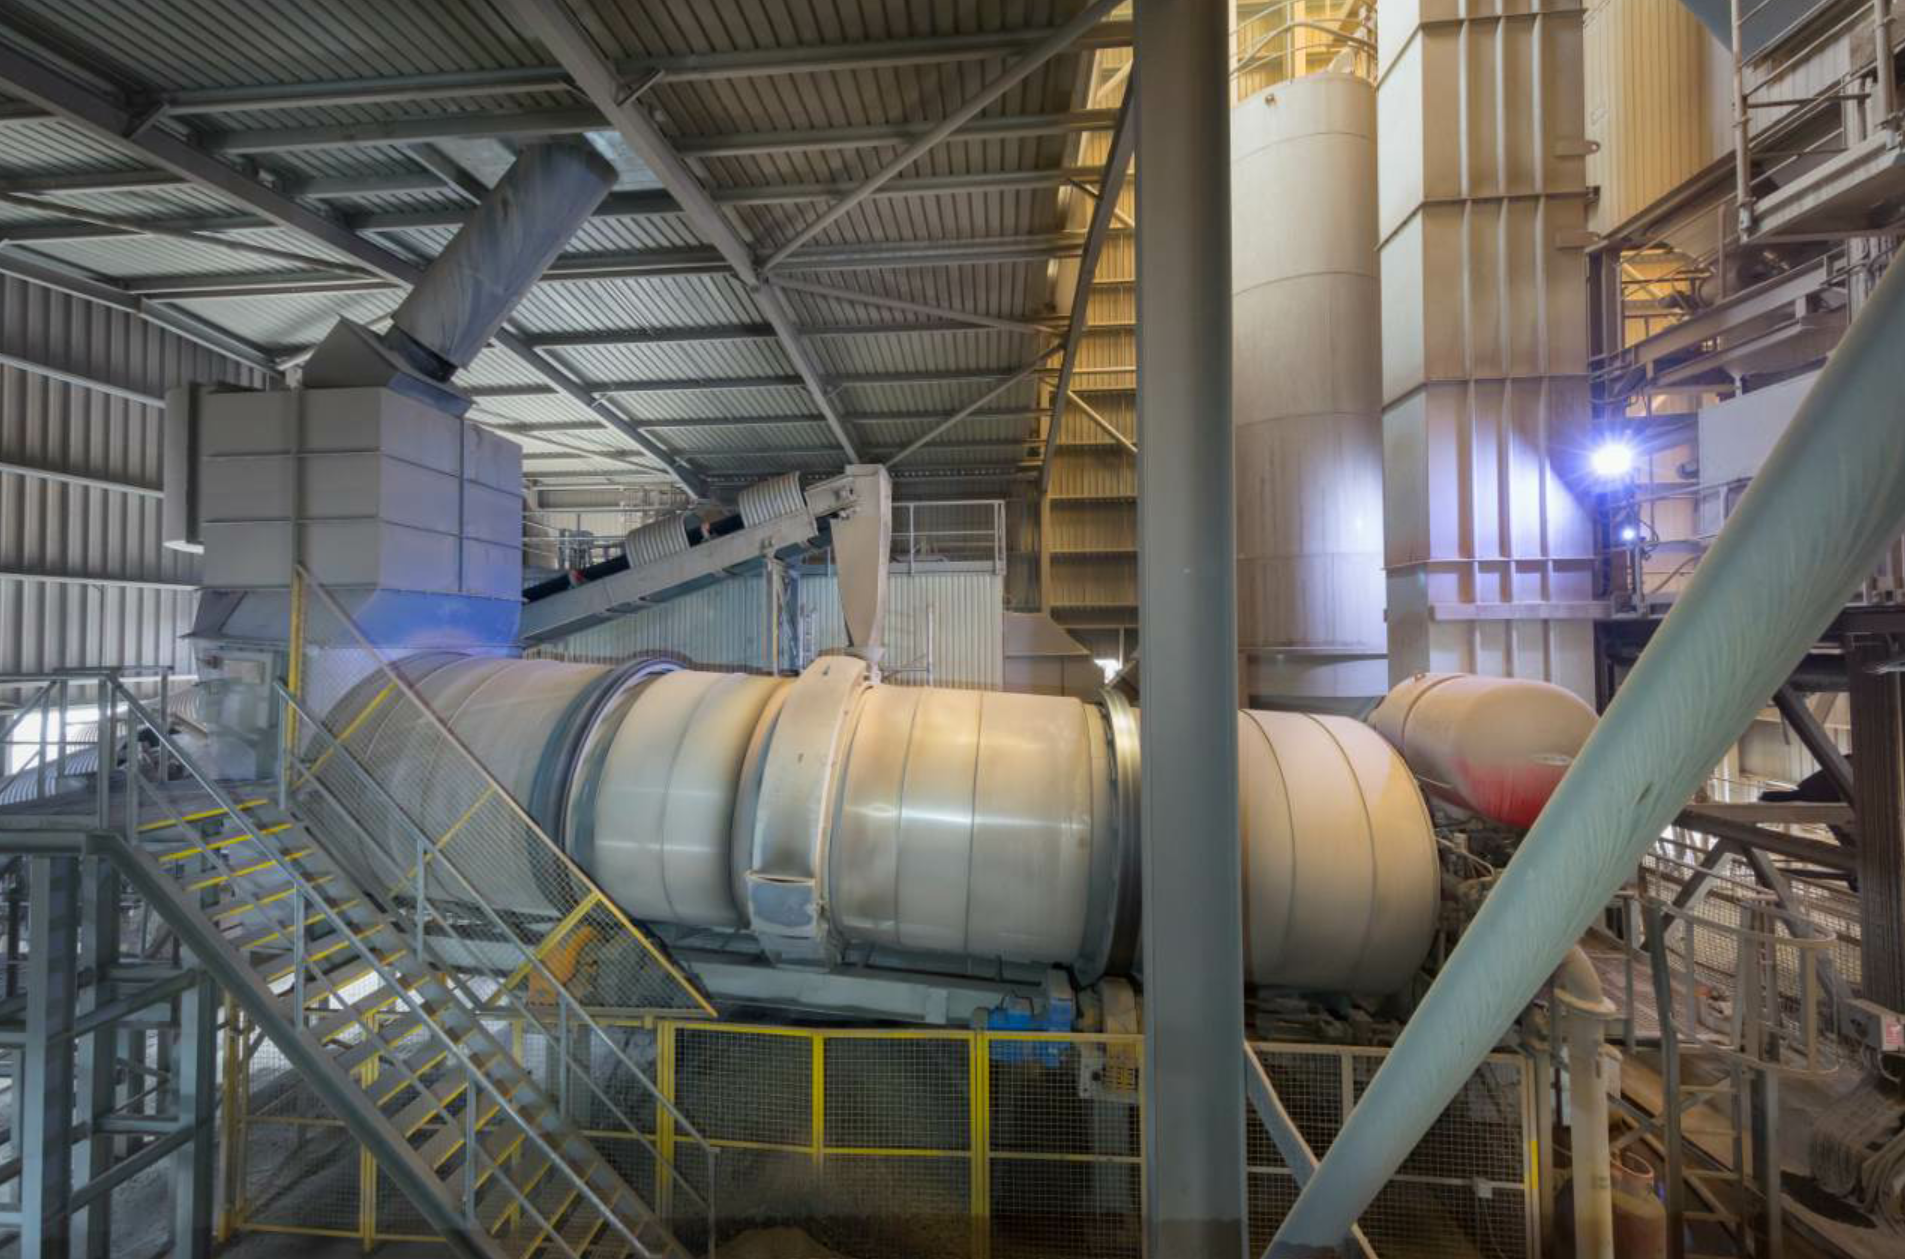 Aggregate Industries is committed to sustainable practices. They have an enclosed facility and covered bins to keep dust down, and they've incorporated RAP mixes at their Ammann ABP 240 Universal Asphalt-Mixing Plant.